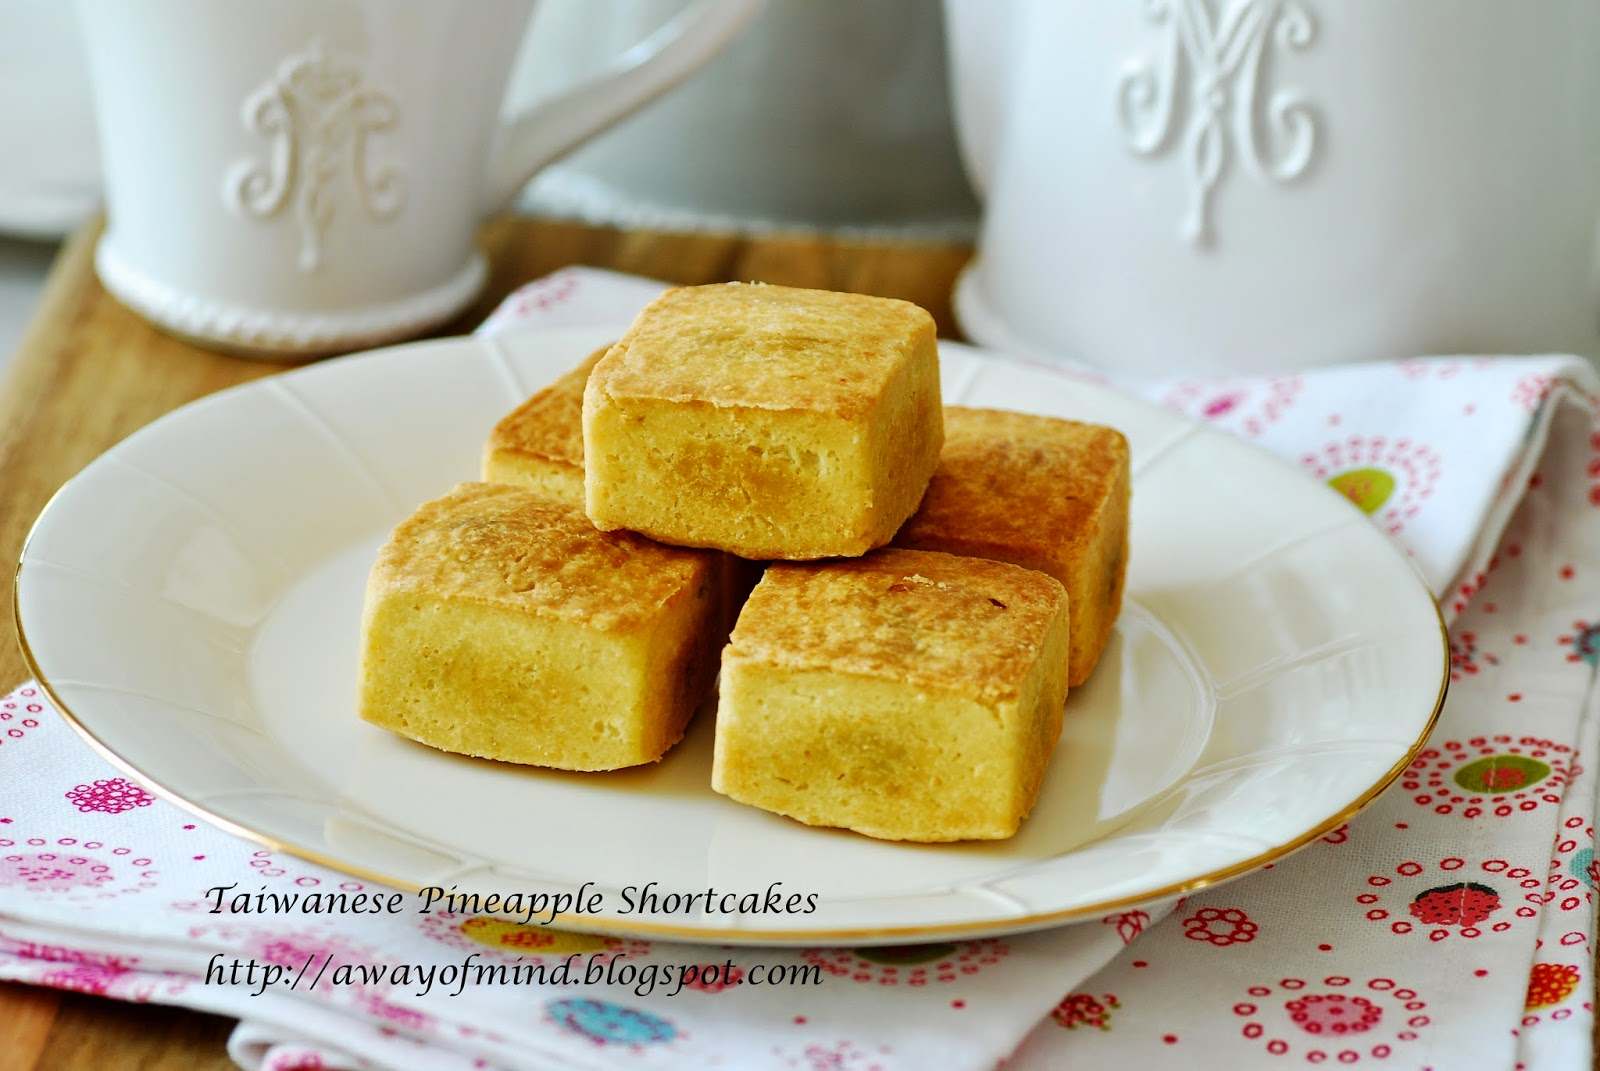 ... Bakery House: Taiwanese Pineapple Shortcakes 台式凤梨酥